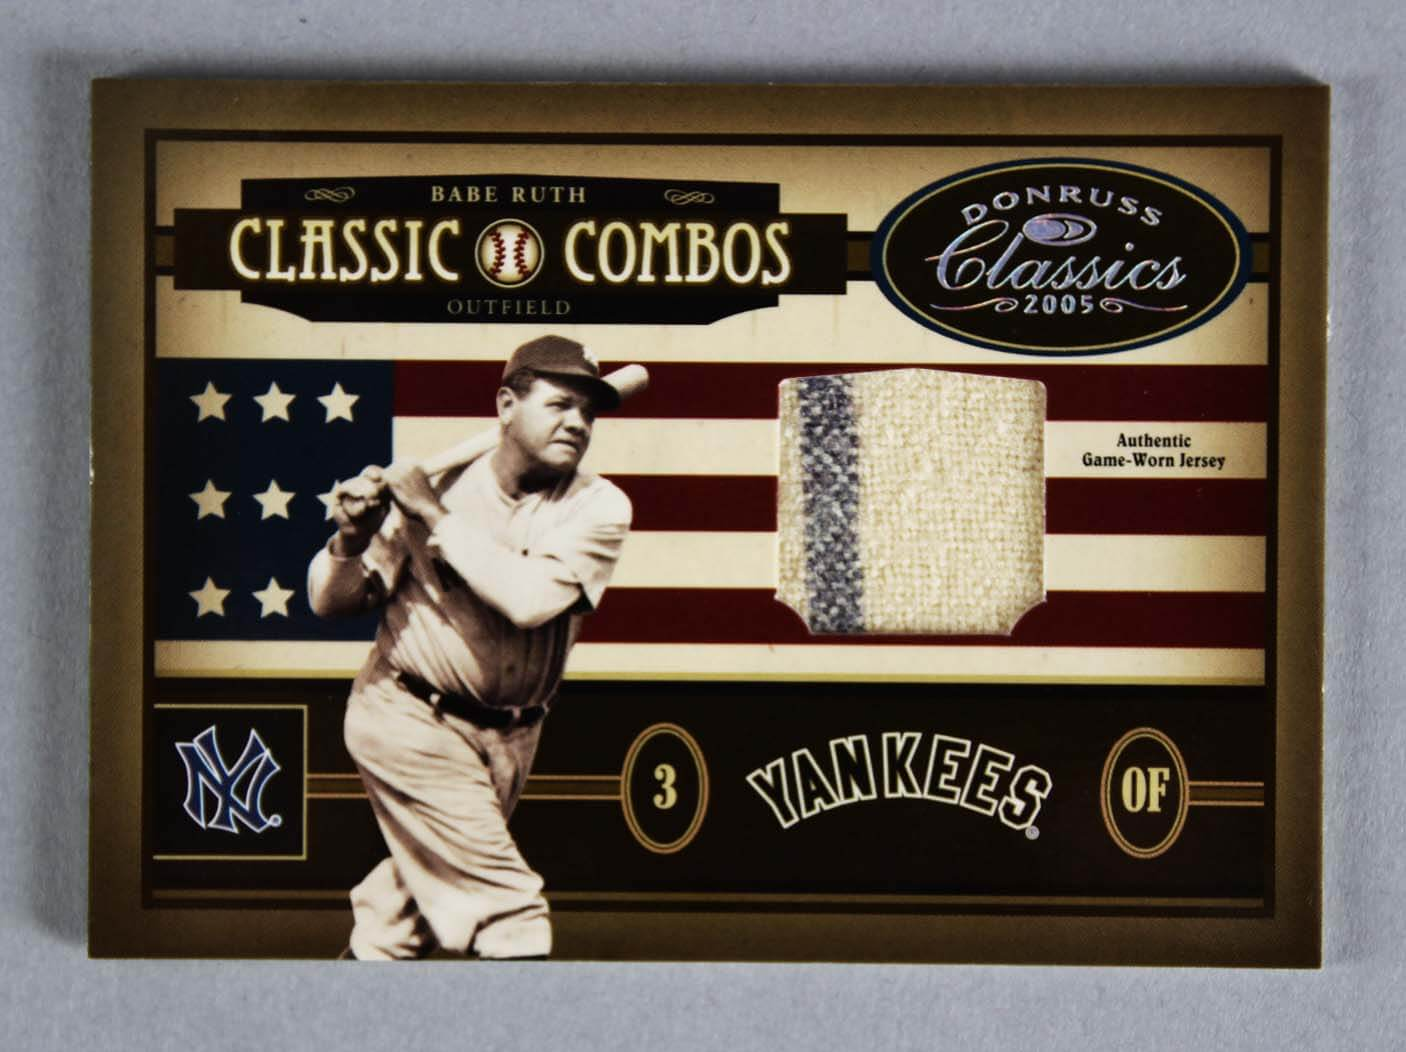 Babe Ruth & Ted Williams Jersey Card Combos 4/5